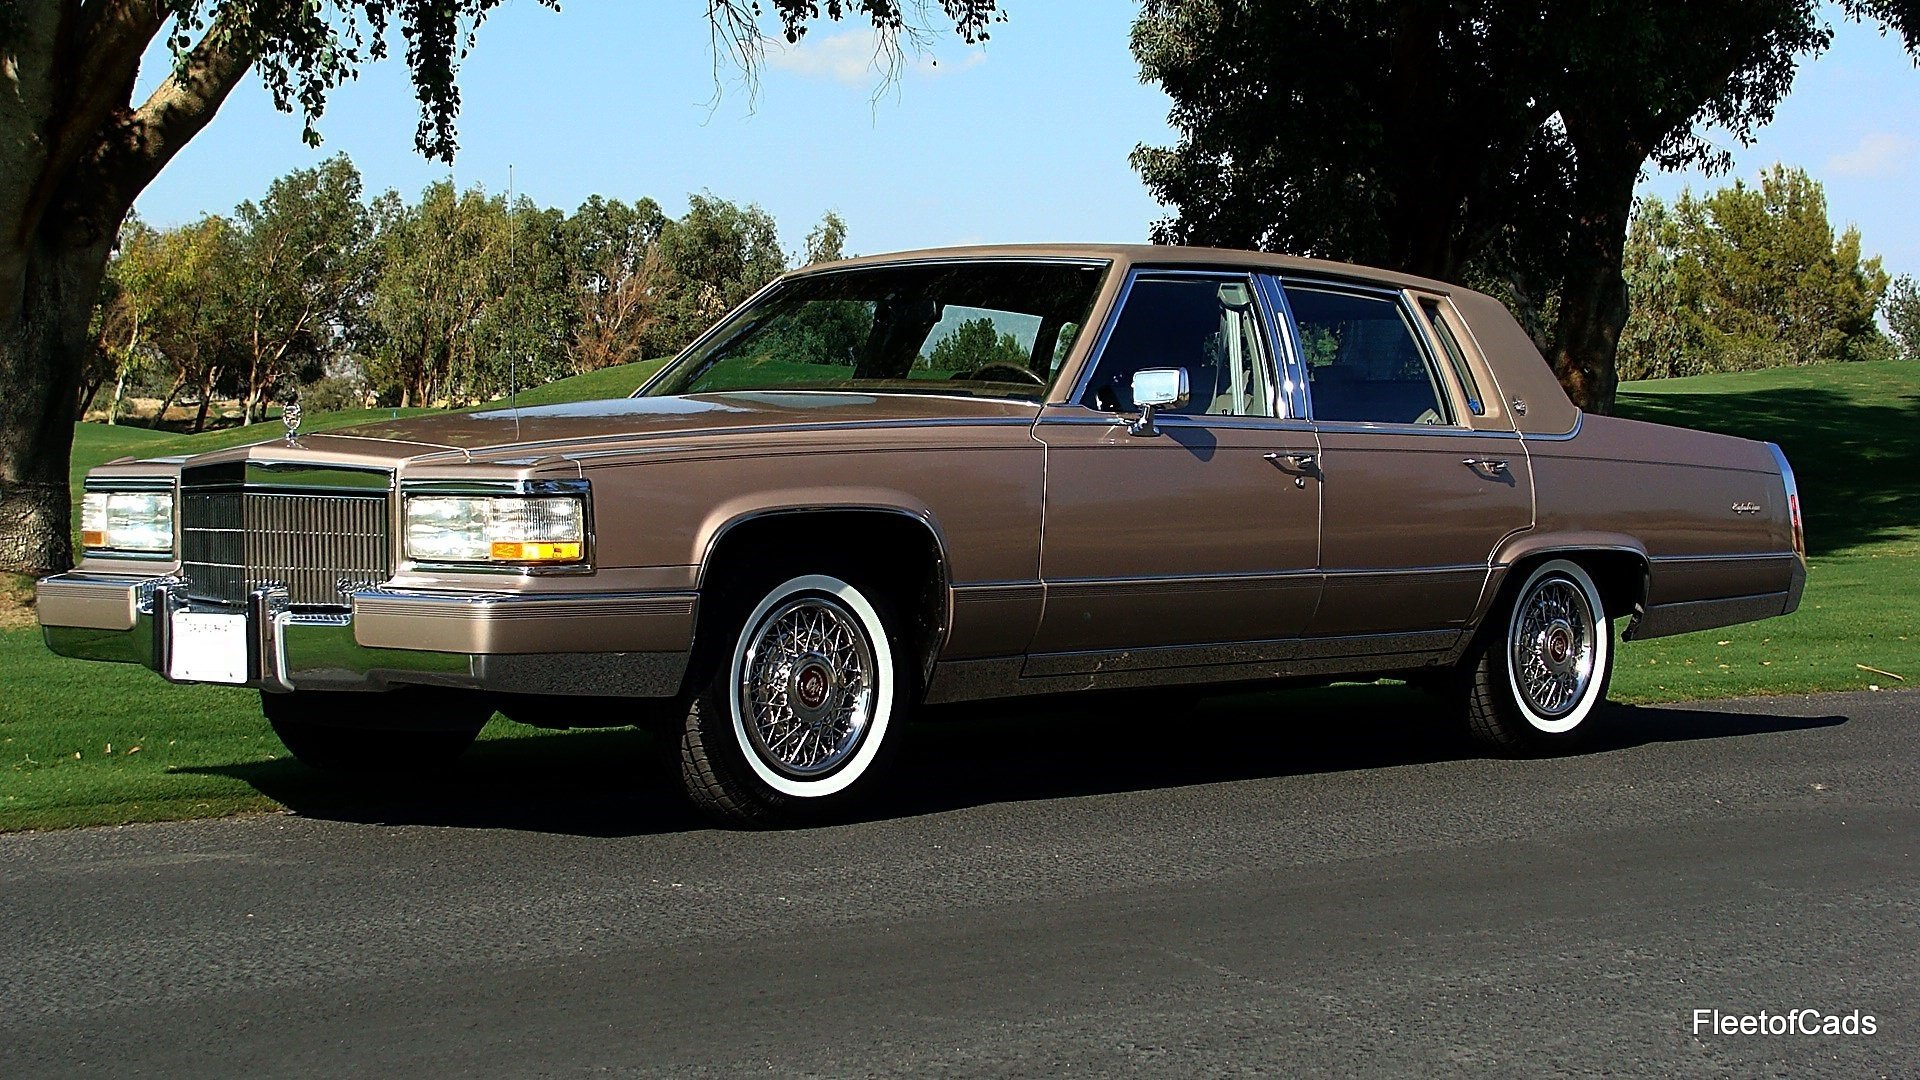 75 Sedan Deville Wiring Diagram besides 5 7 V 8 Vin 7 Firing Order besides 0q6nl Need Instrument Panel Cluster 1996 Cadillac likewise RepairGuideContent further 89 Cadillac Eldorado Fuel Pump Relay Location. on 1992 cadillac brougham wiring diagram